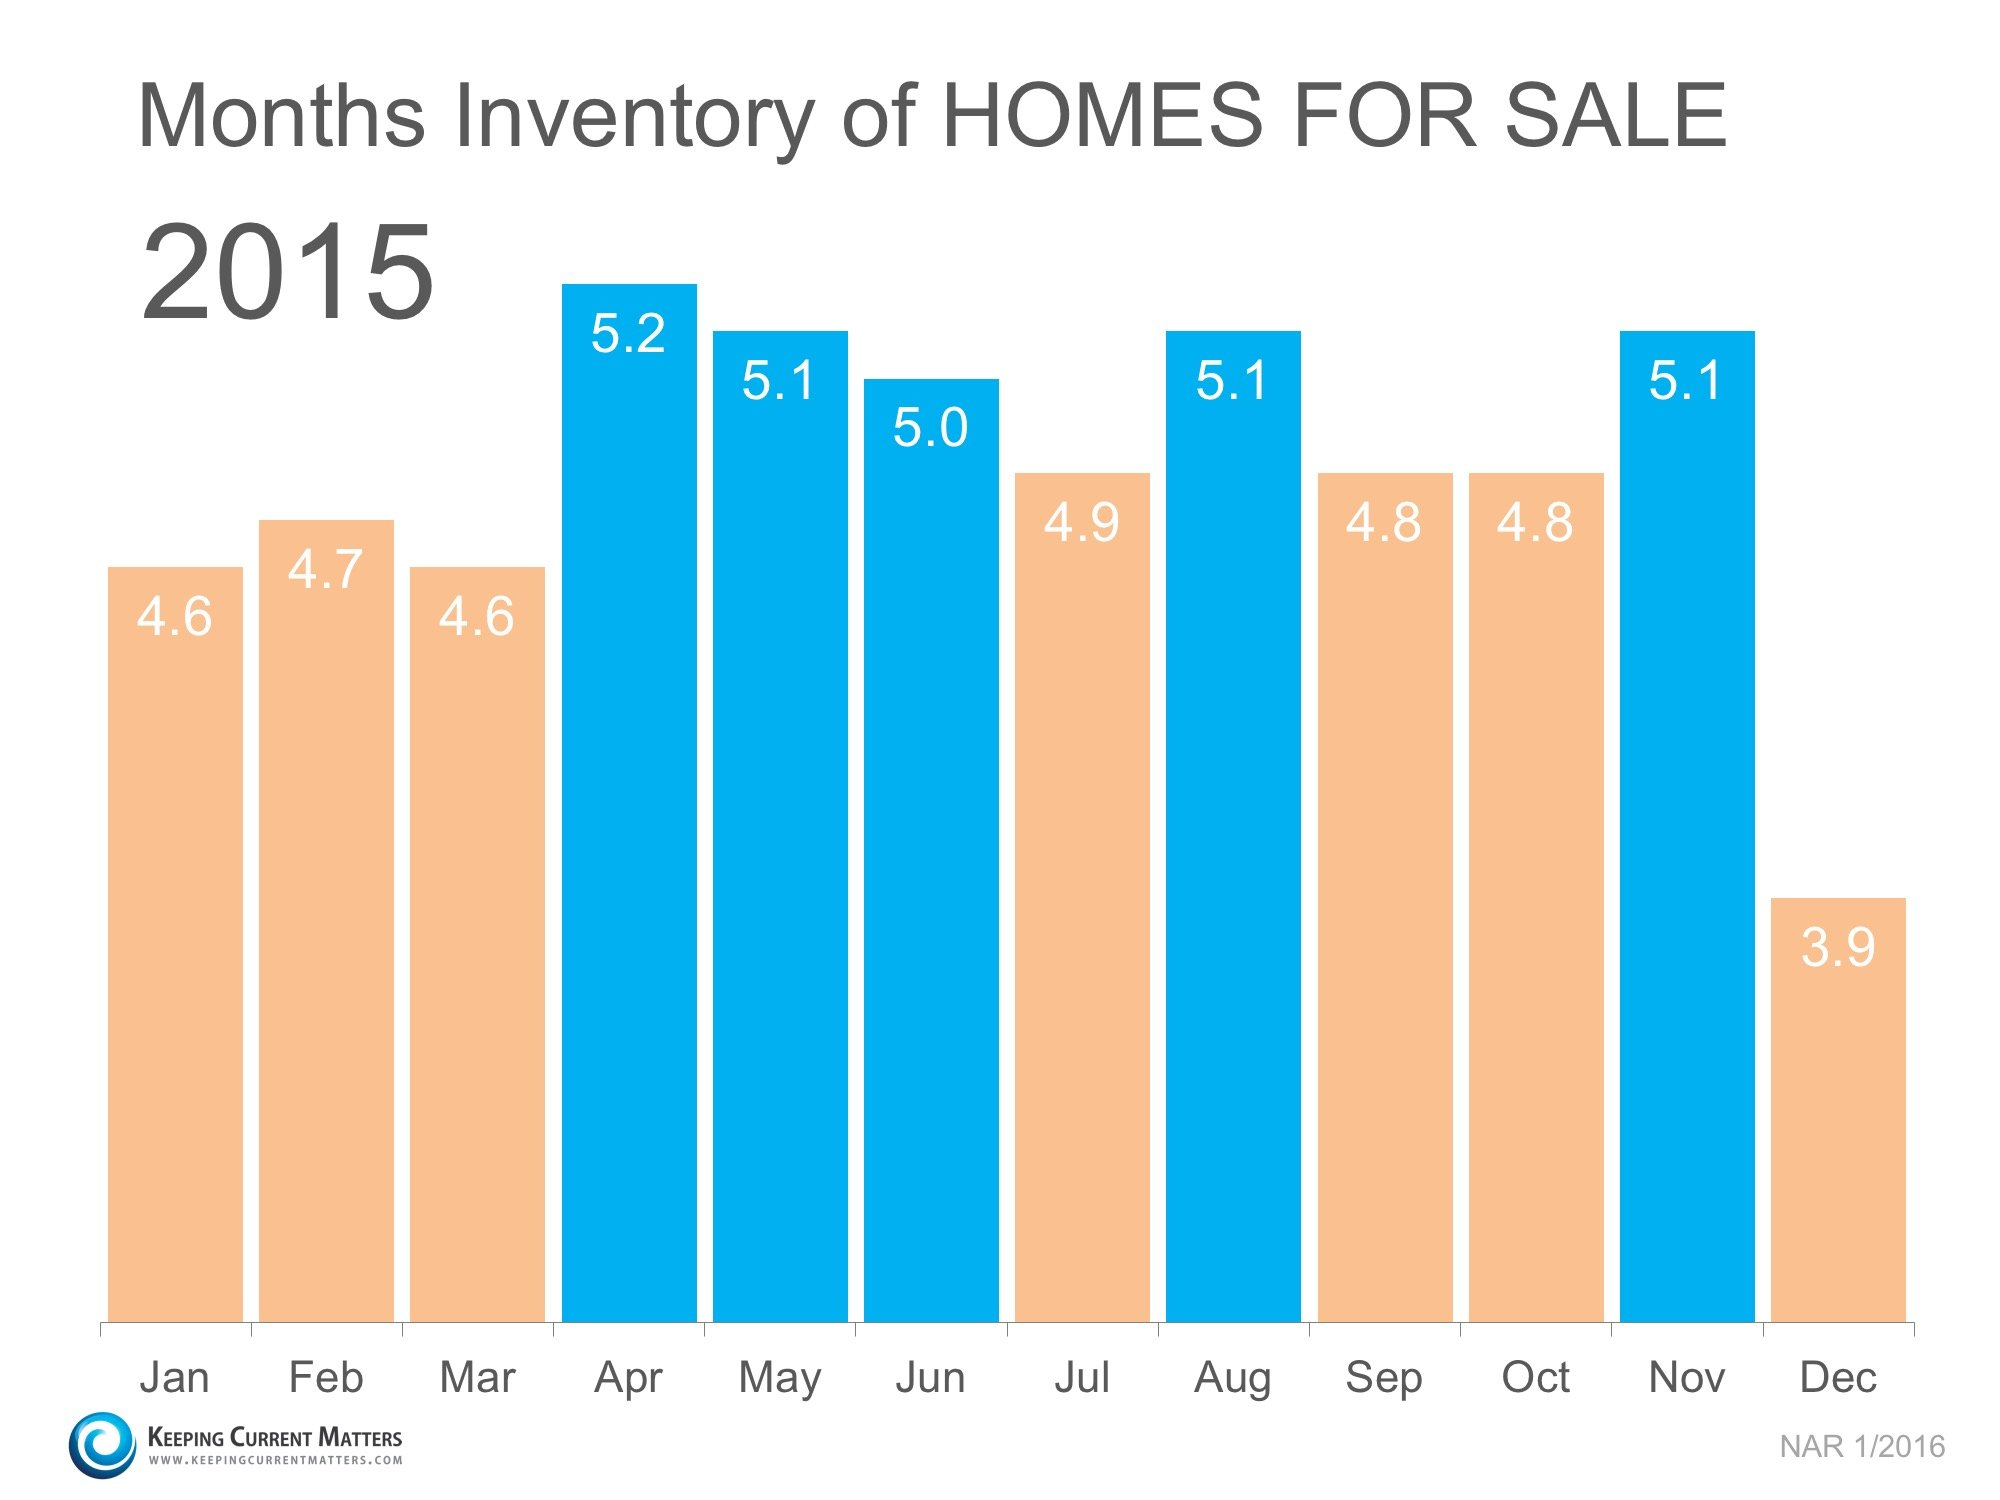 2015 Months Inventory of Homes For Sale | Keeping Current Matters